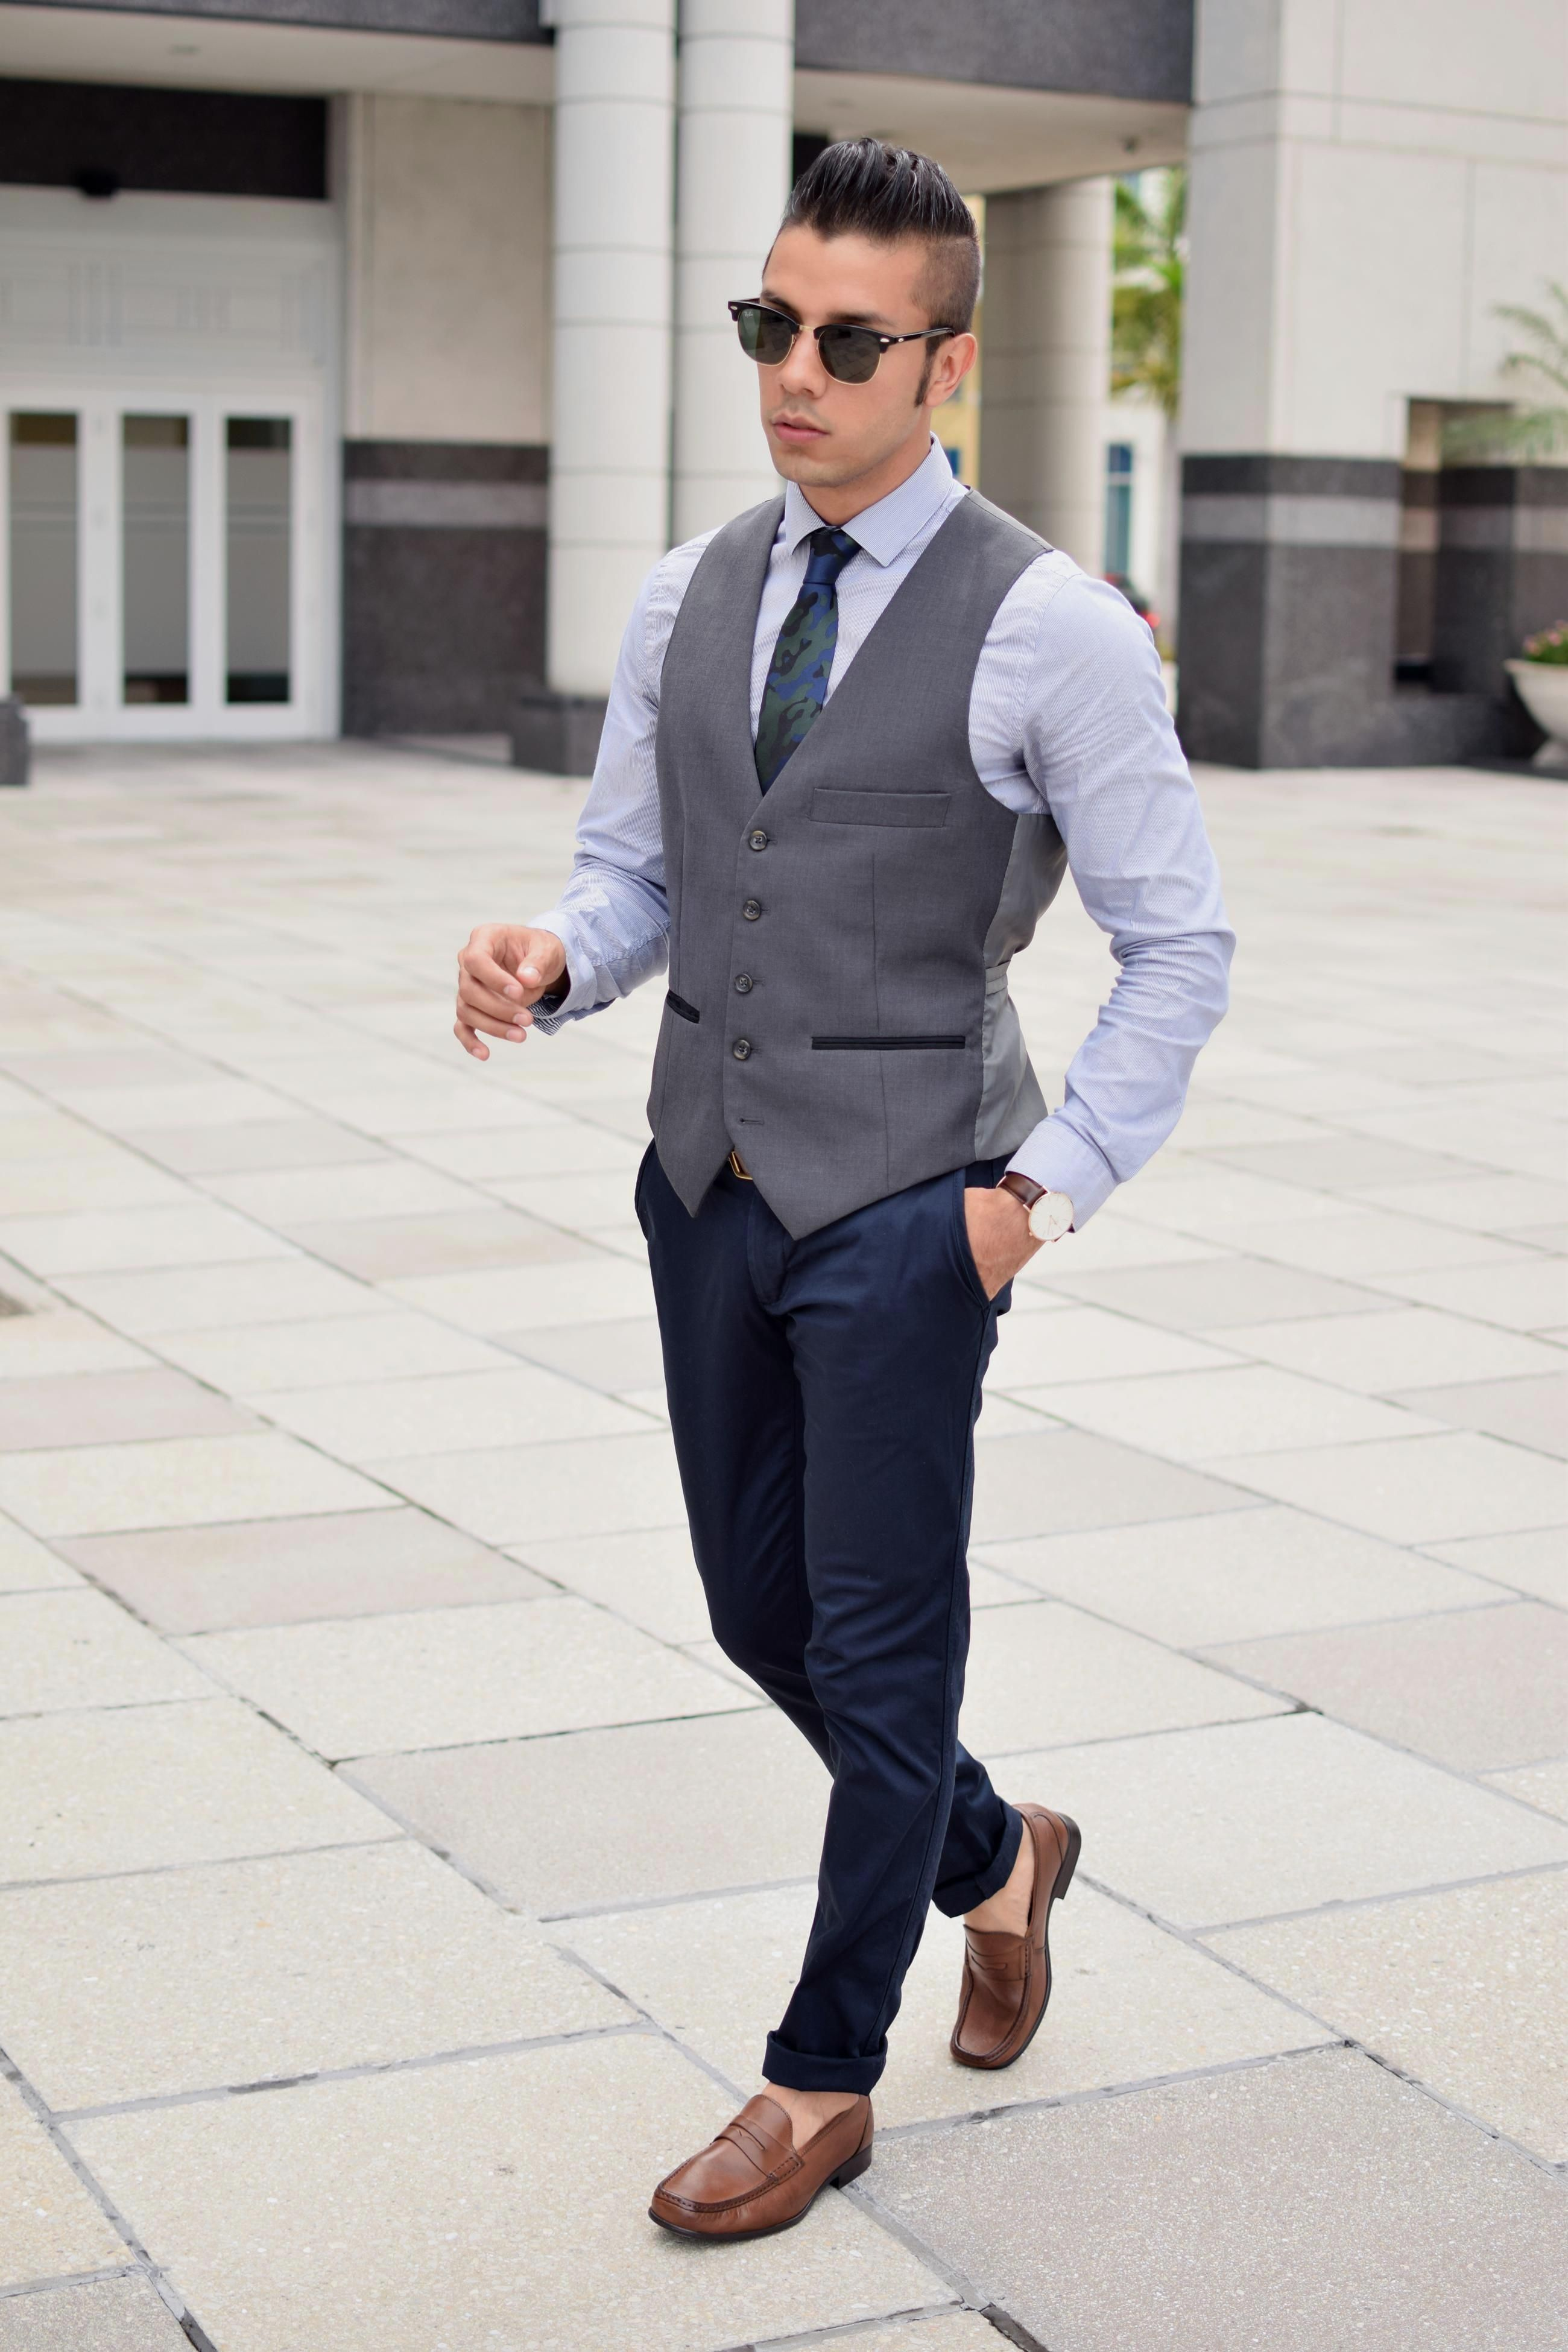 a1bd9d817018b Nail that dapper look with a charcoal waistcoat and navy chinos. To break  out of